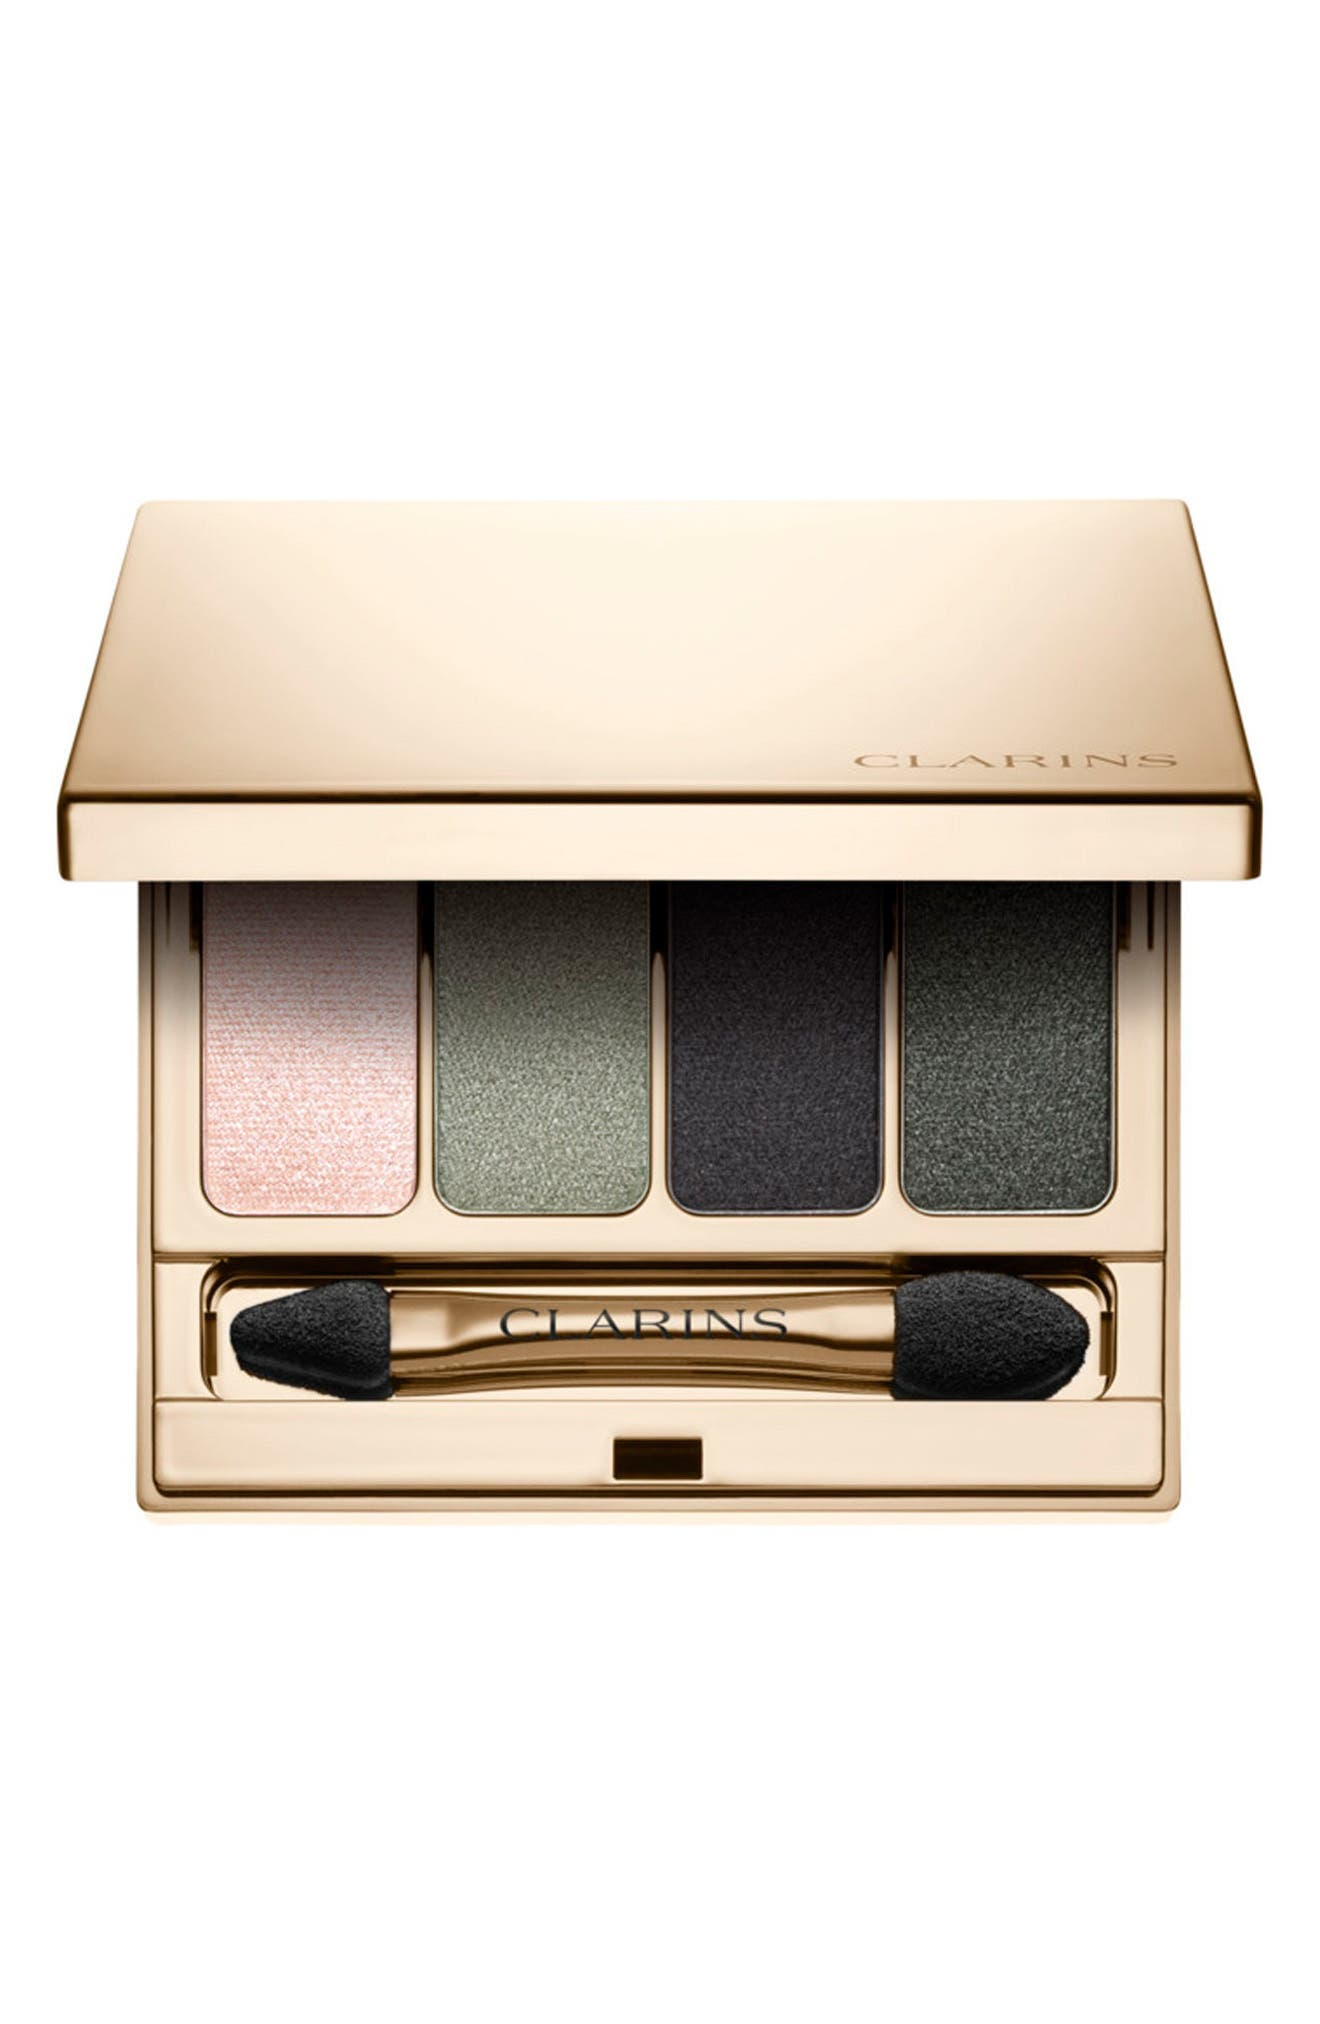 4-Colour Eyeshadow Palette,                         Main,                         color, 06 FOREST